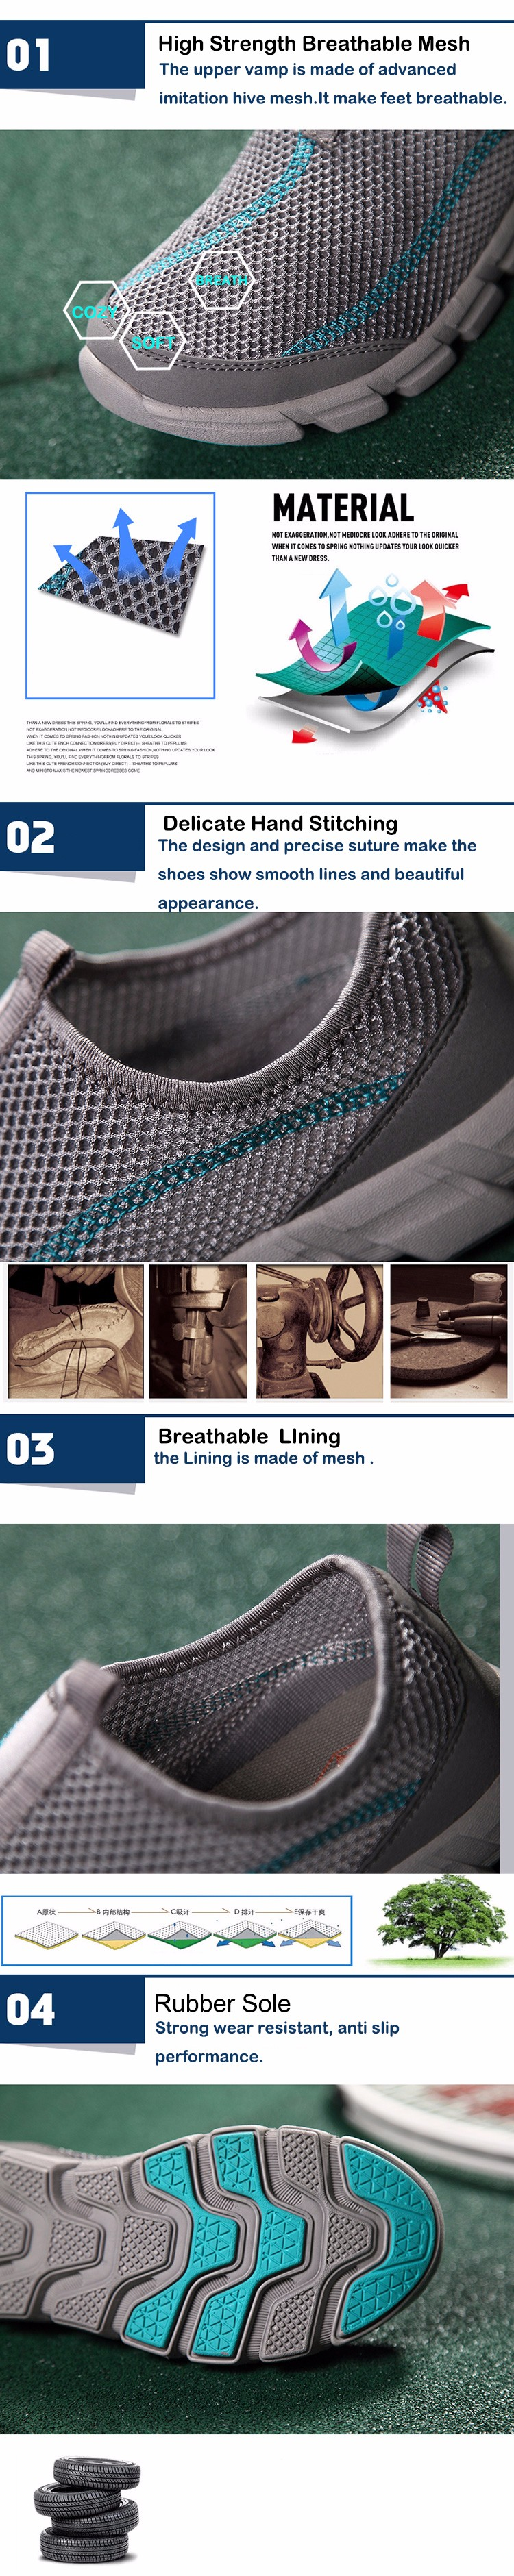 LEMAI 16 New Cool Athletic Men Sneakers Summer Breathable Mesh Sport Shoes For Men Outdoor Super Light Running Shoes FB013 23